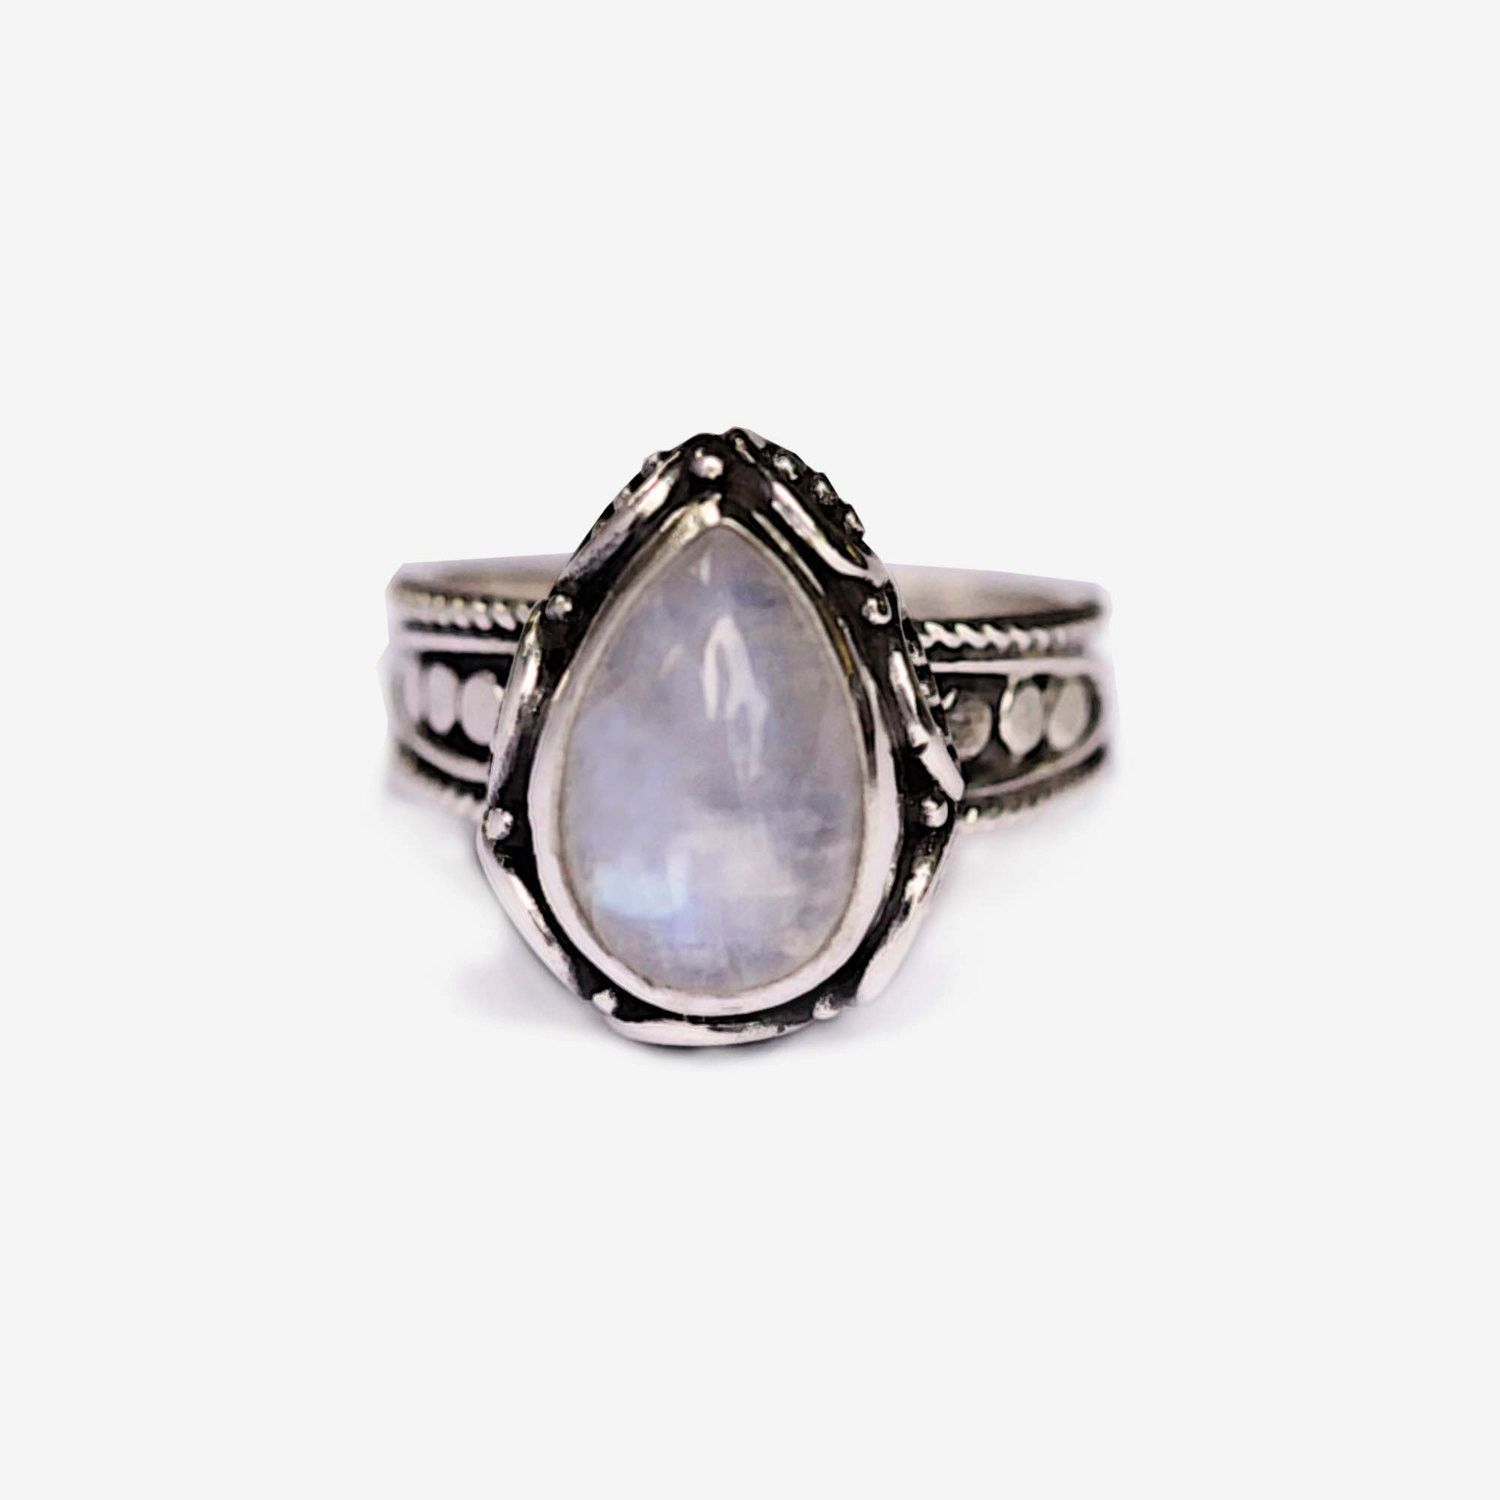 Teardrop Moonstone Ring, Handcrafted in Solid 925 Sterling Silver